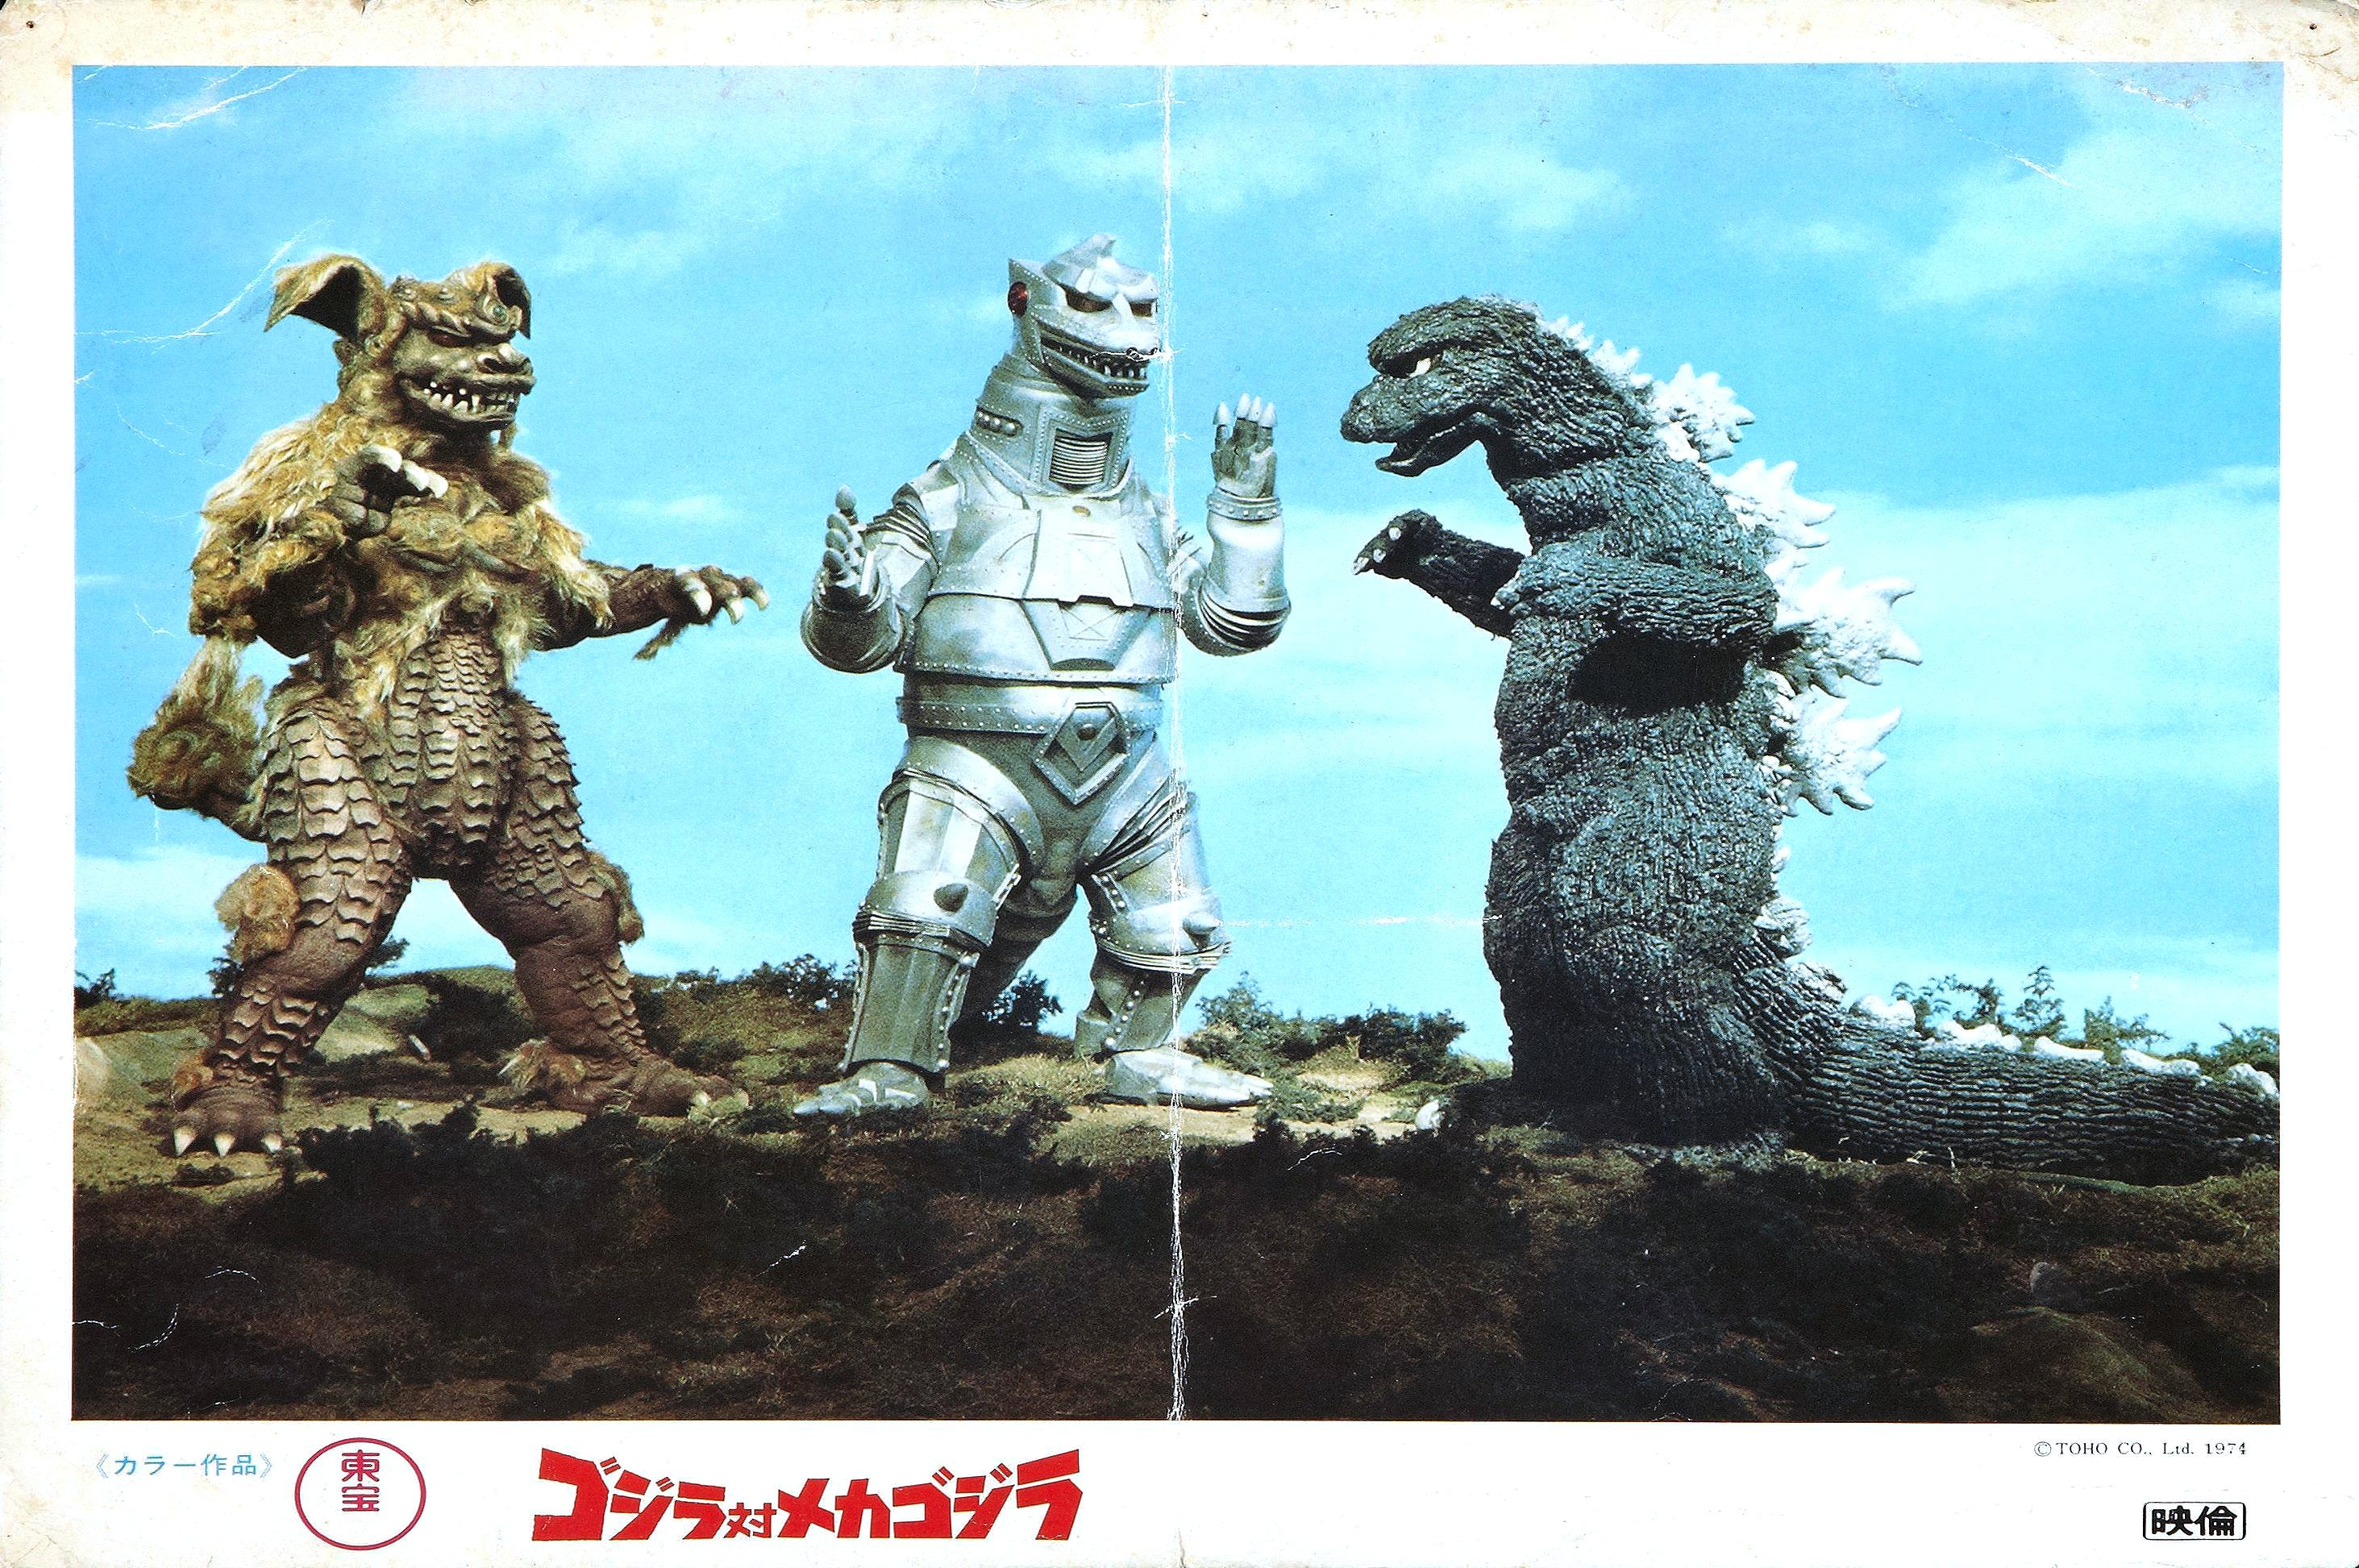 Godzilla Vs Mechagodzilla Computer Wallpapers Desktop Backgrounds 2926x1945